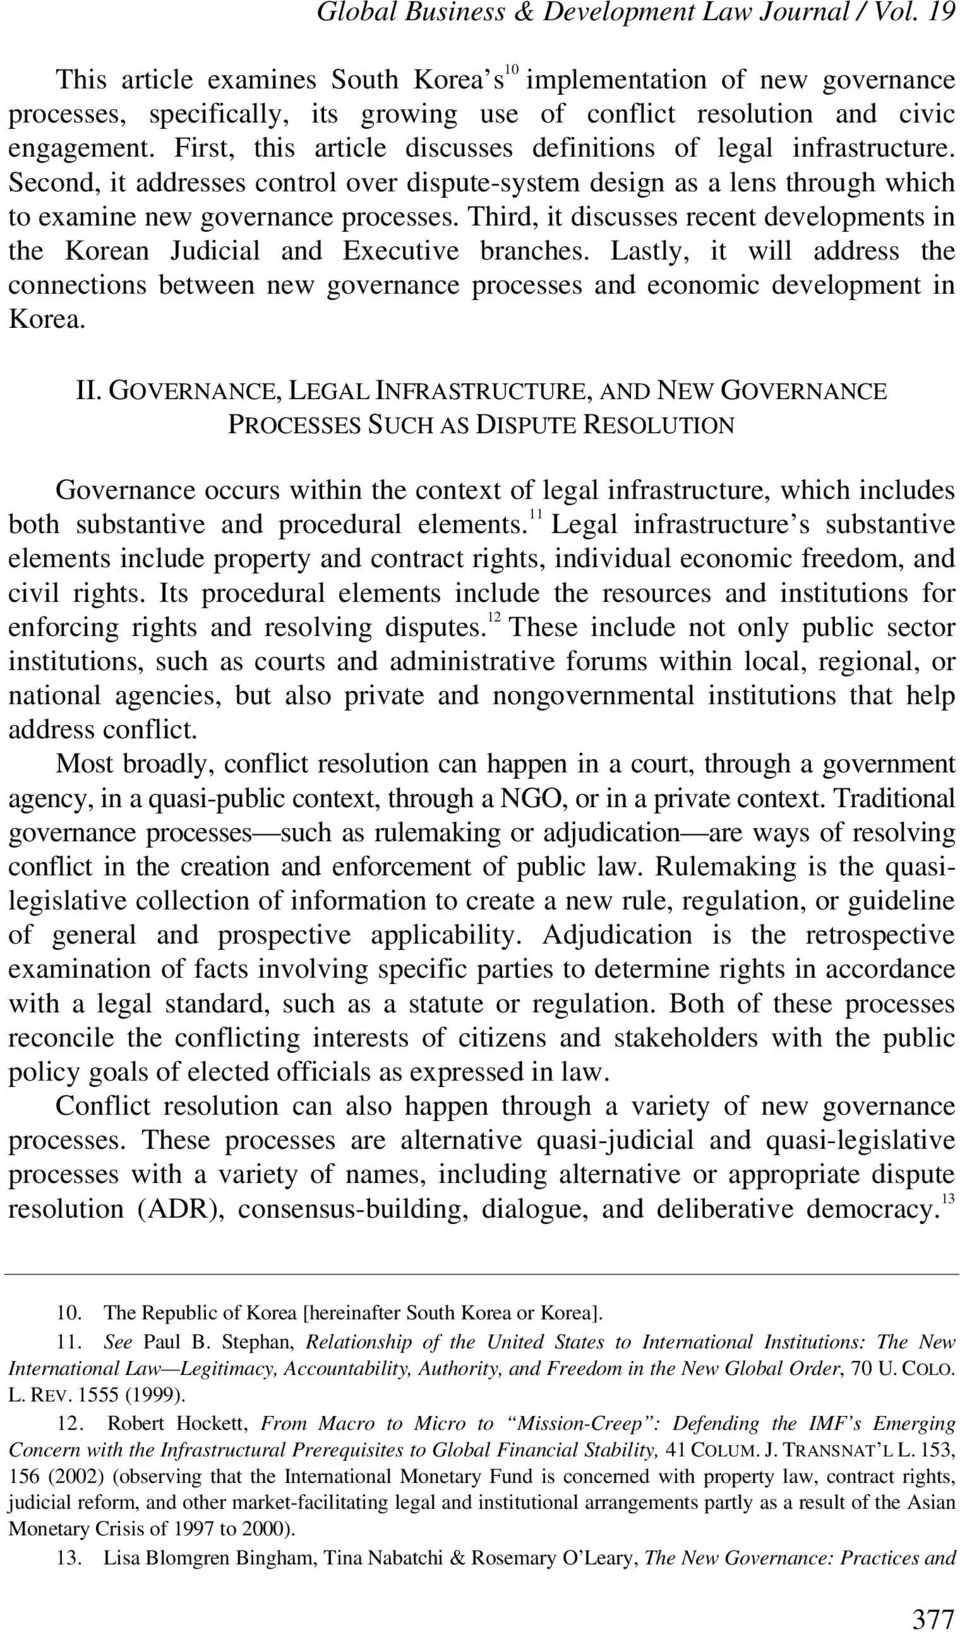 First, this article discusses definitions of legal infrastructure. Second, it addresses control over dispute-system design as a lens through which to examine new governance processes.